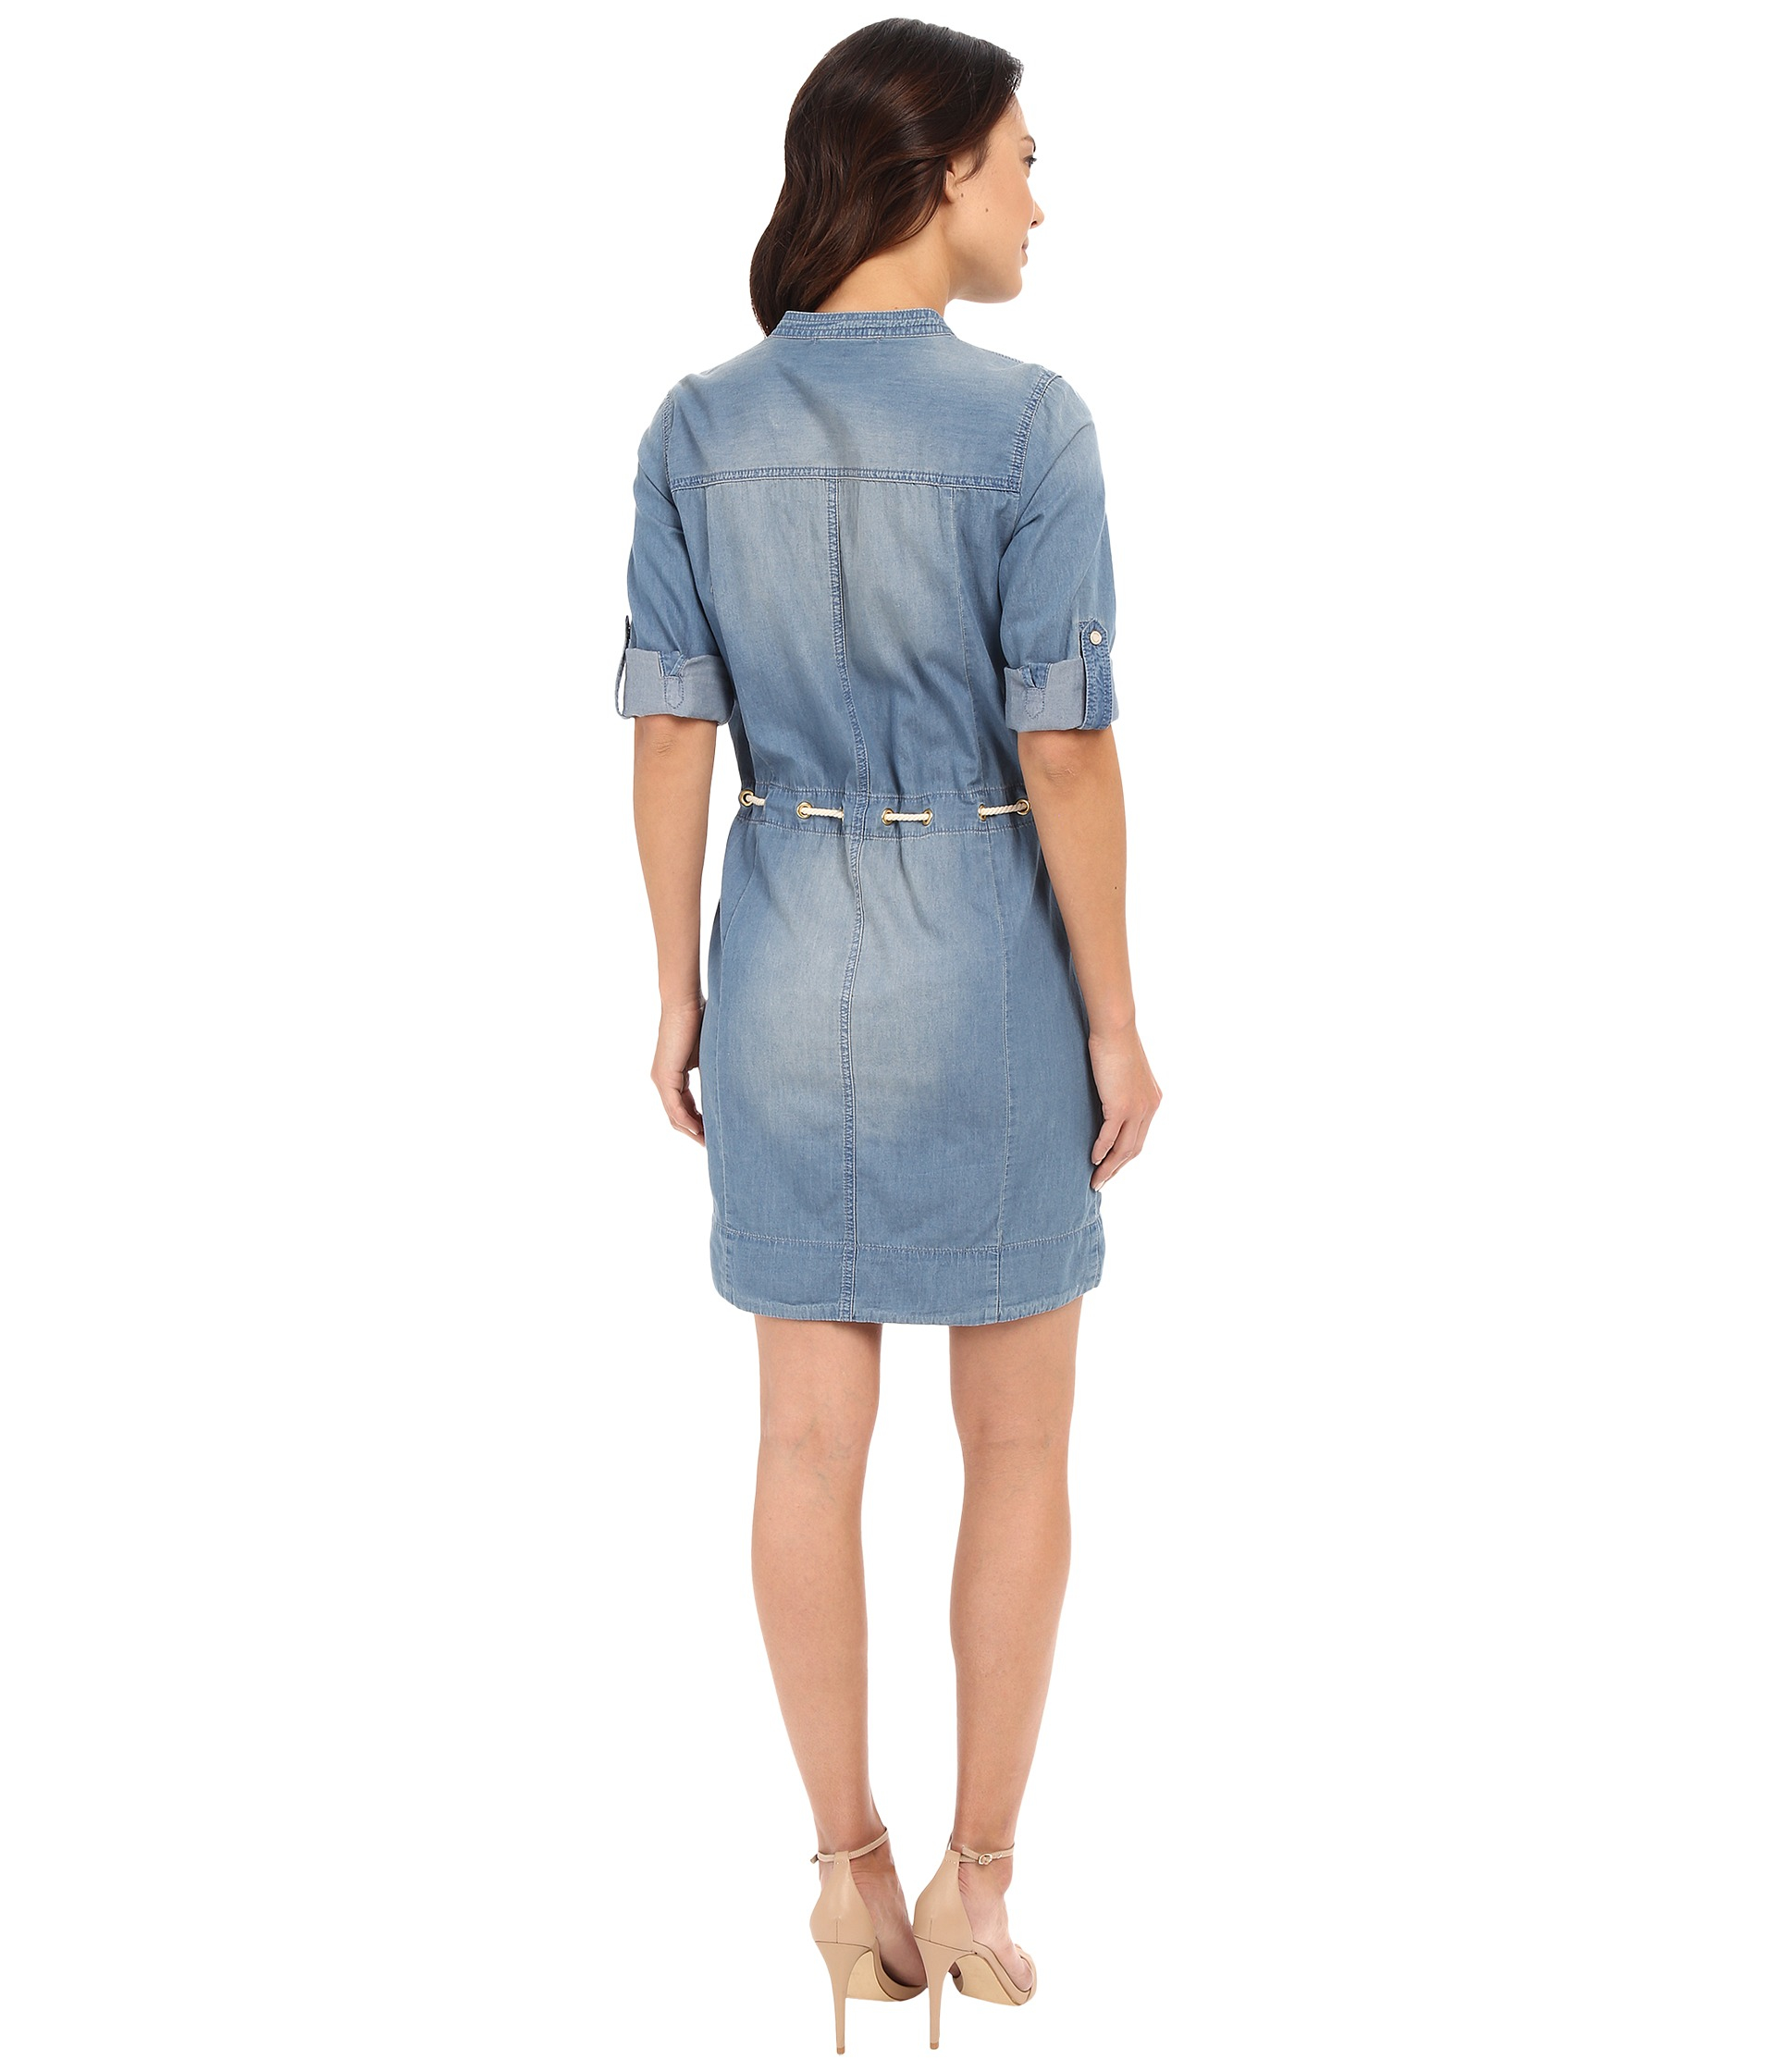 Michael Michael Kors Denim Dress In Blue